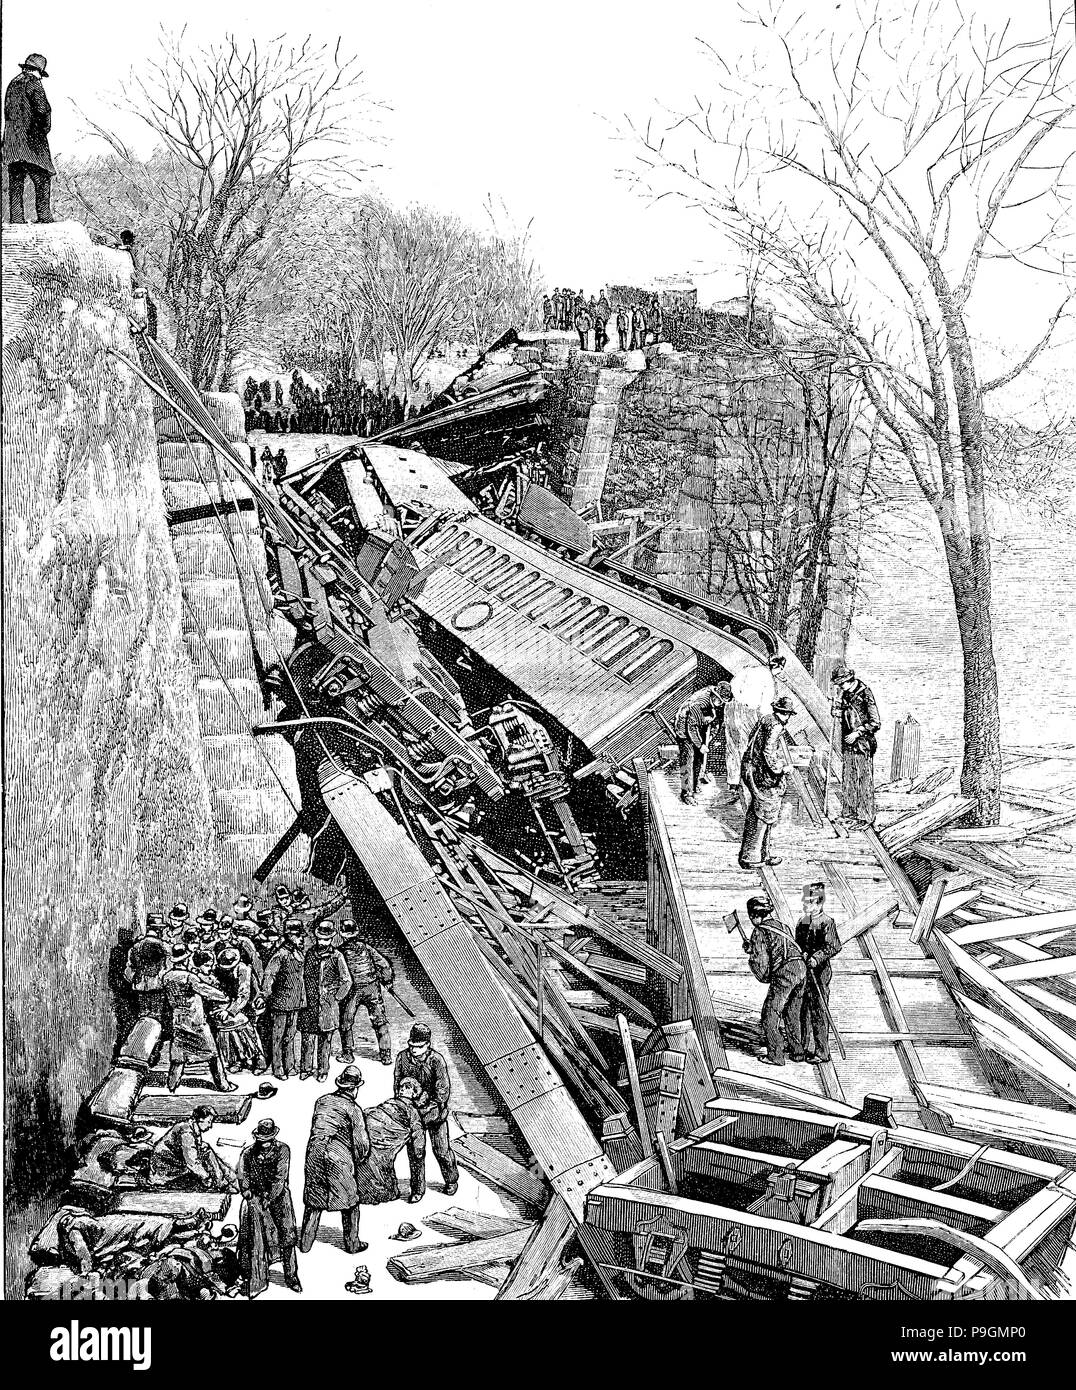 Chatsworth rail disaster, near Niagara Falls, with more than 200 people dead and 300 injured, occurred in August 1887, engraving of the time. - Stock Image